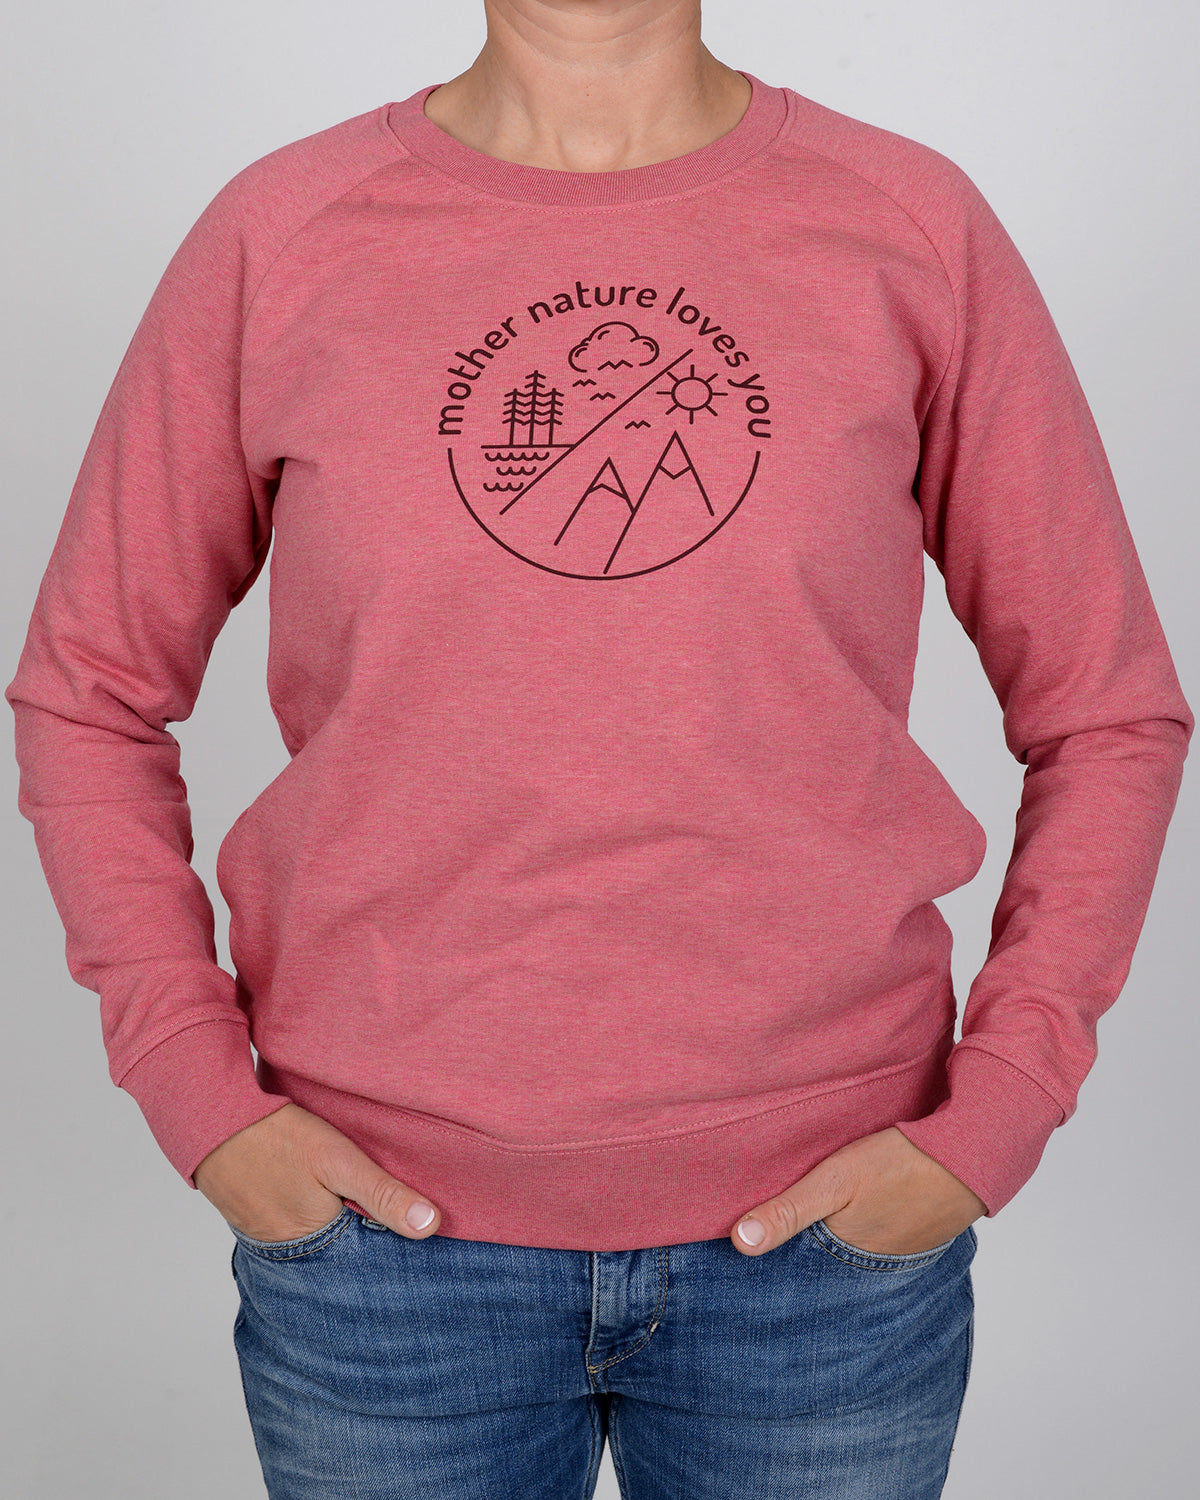 Mother Nature Women sweatshirt